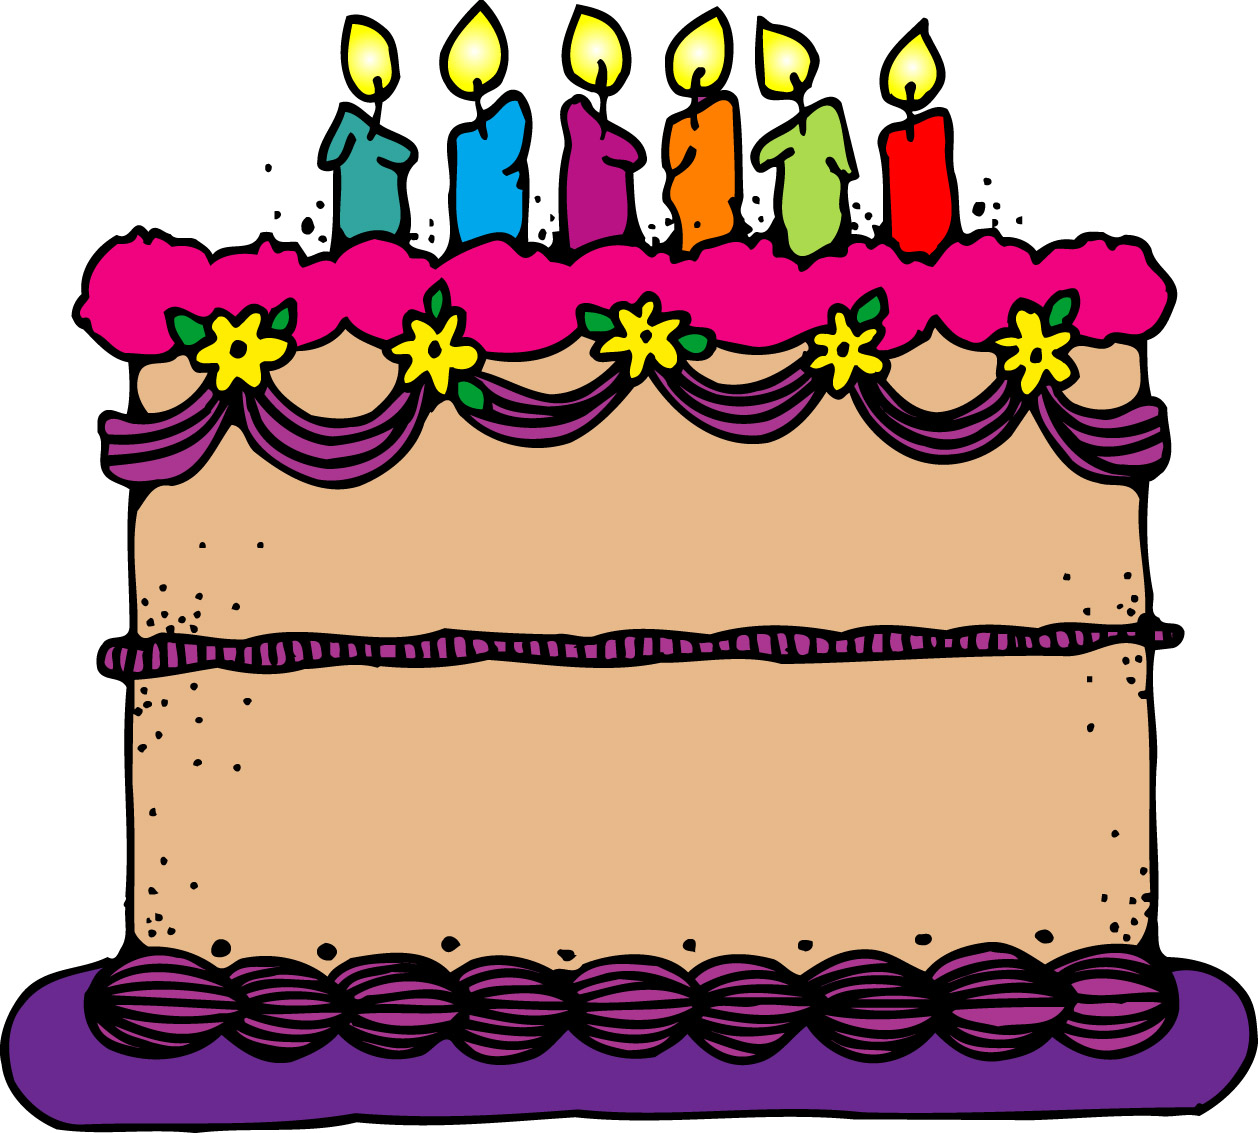 bday cake clipart ; images-of-a-birthday-cake-4